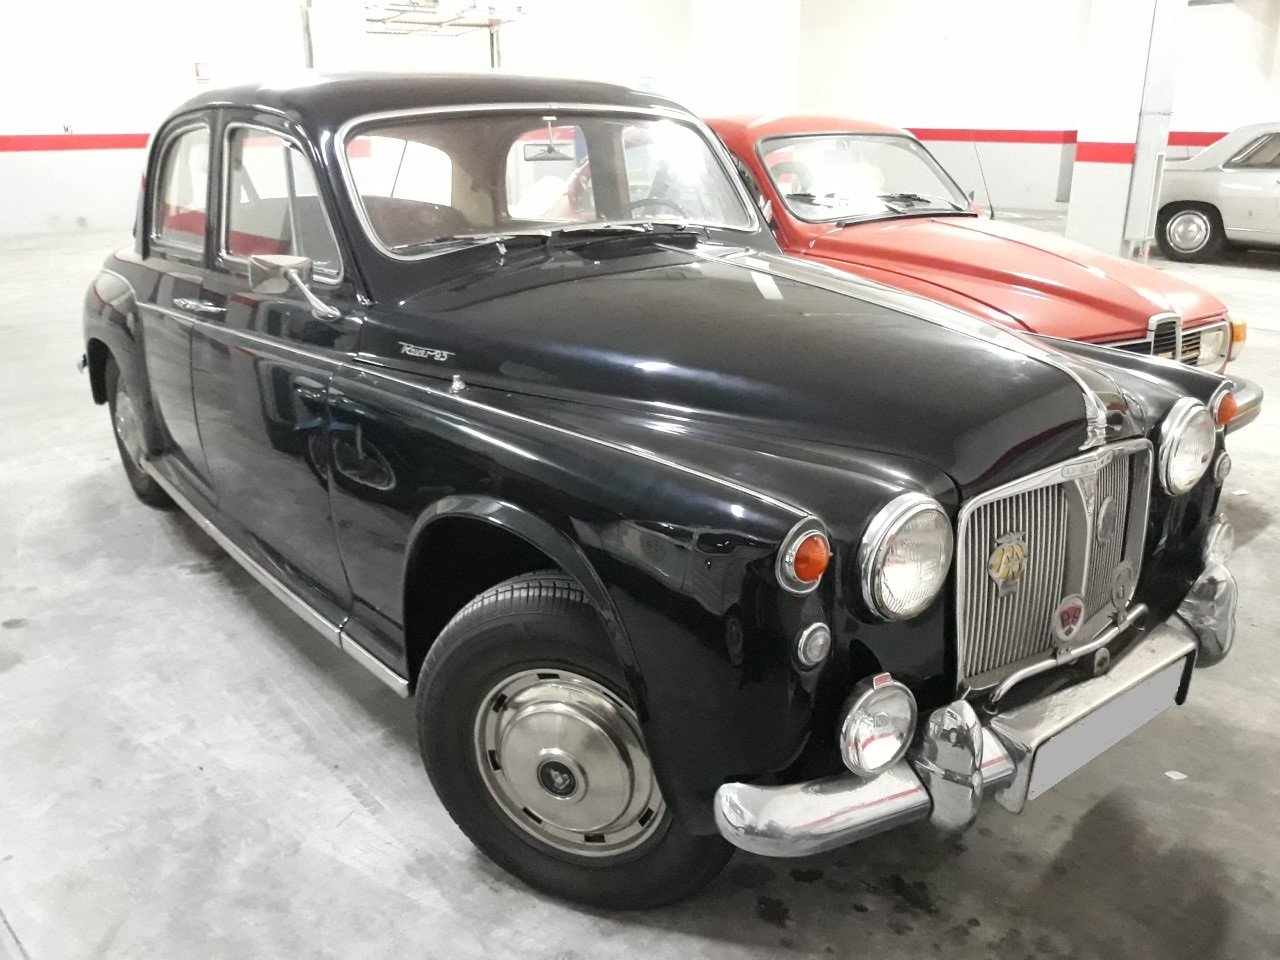 1962 LHD - Rover P4 95 - 2.6L - Only 50.000km. For Sale (picture 1 of 6)